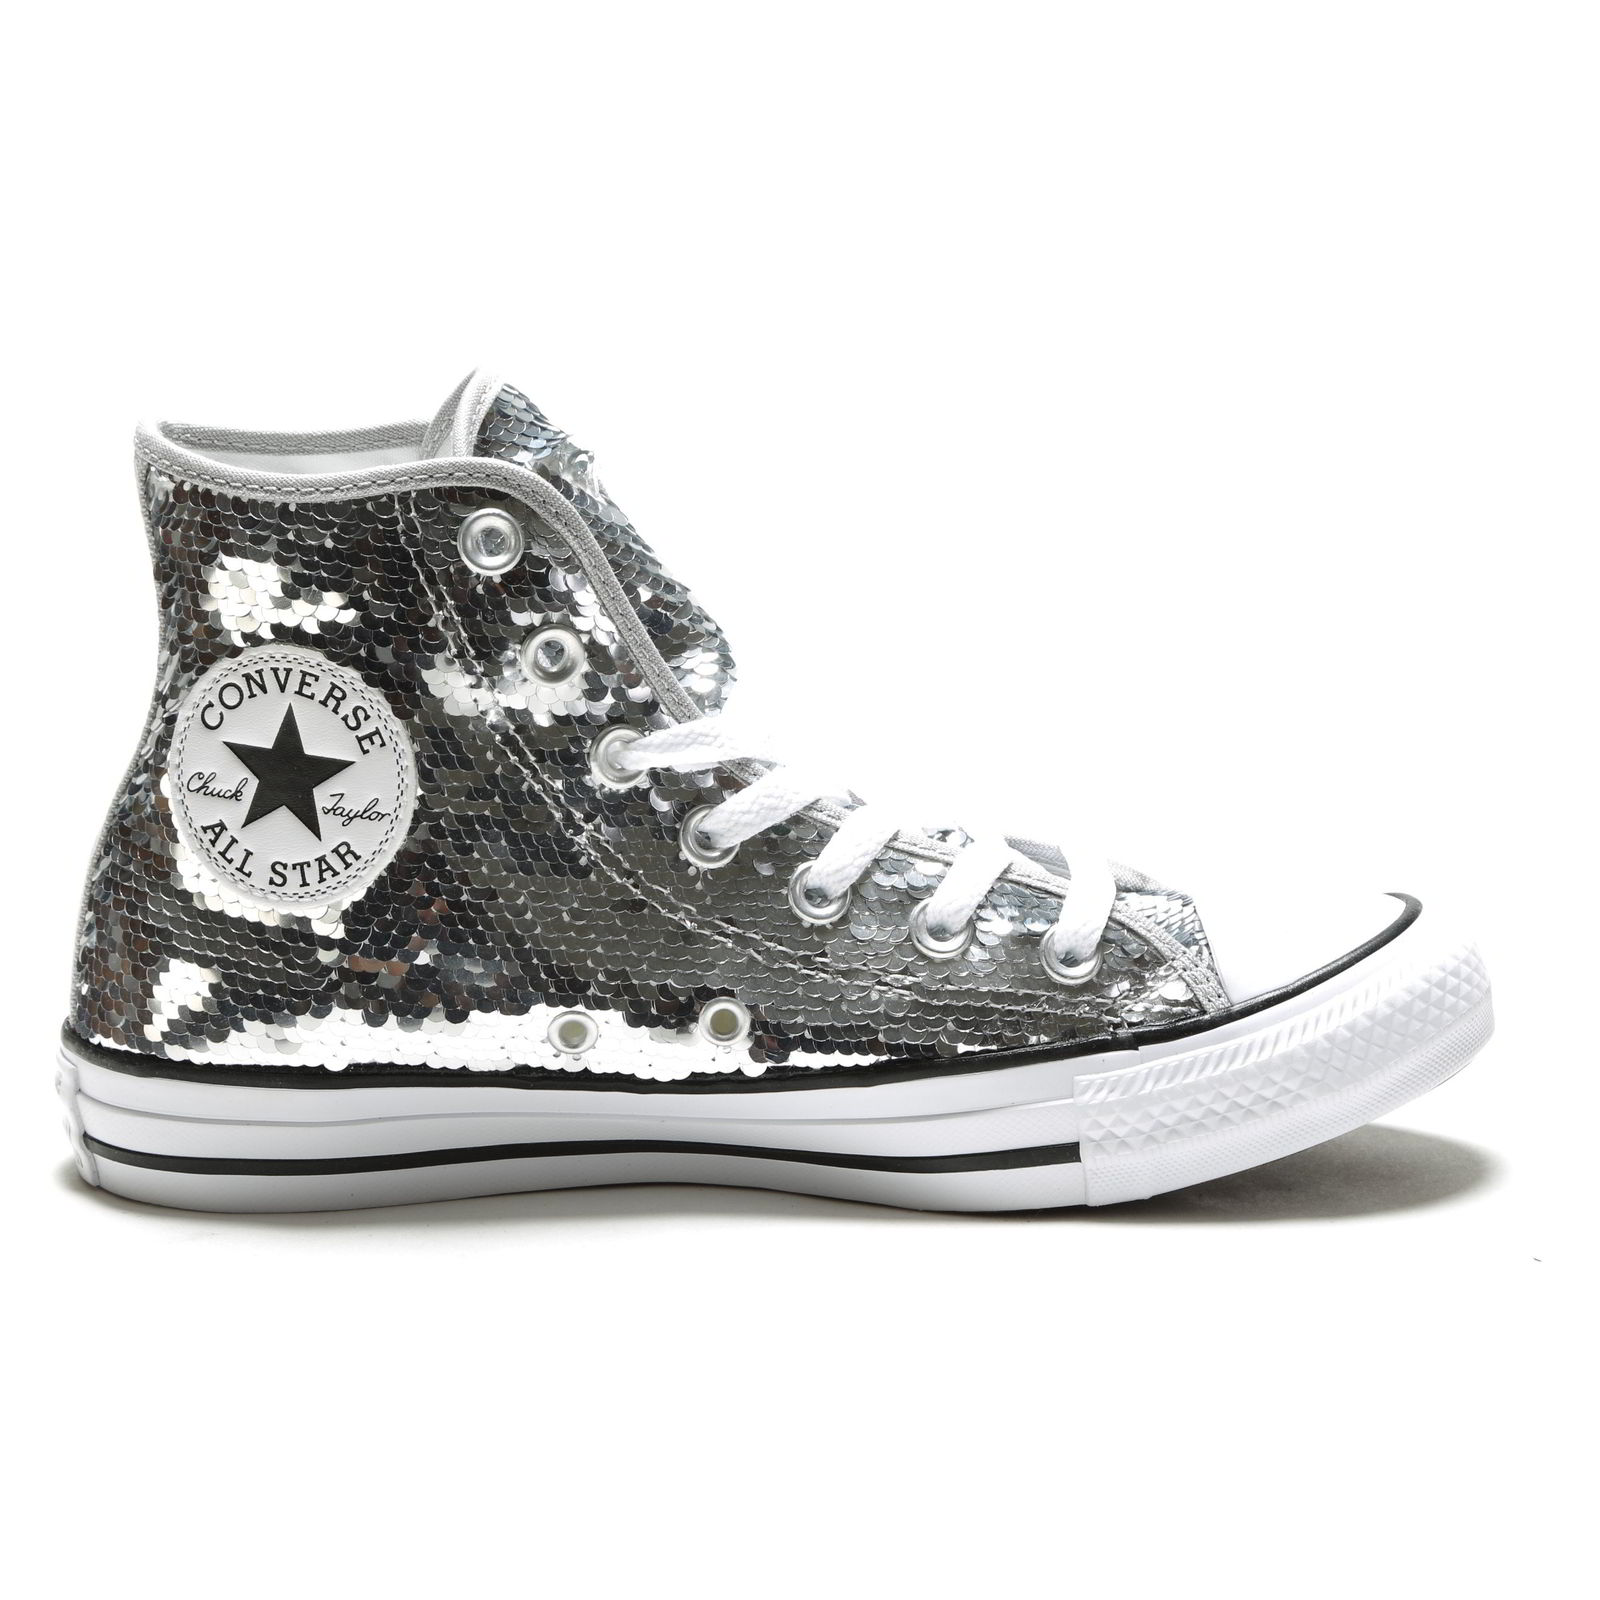 e3f6d79a993a Details about Converse CT All Star Hi Sequins Womens Silver High Tops Boots  Size 4-8